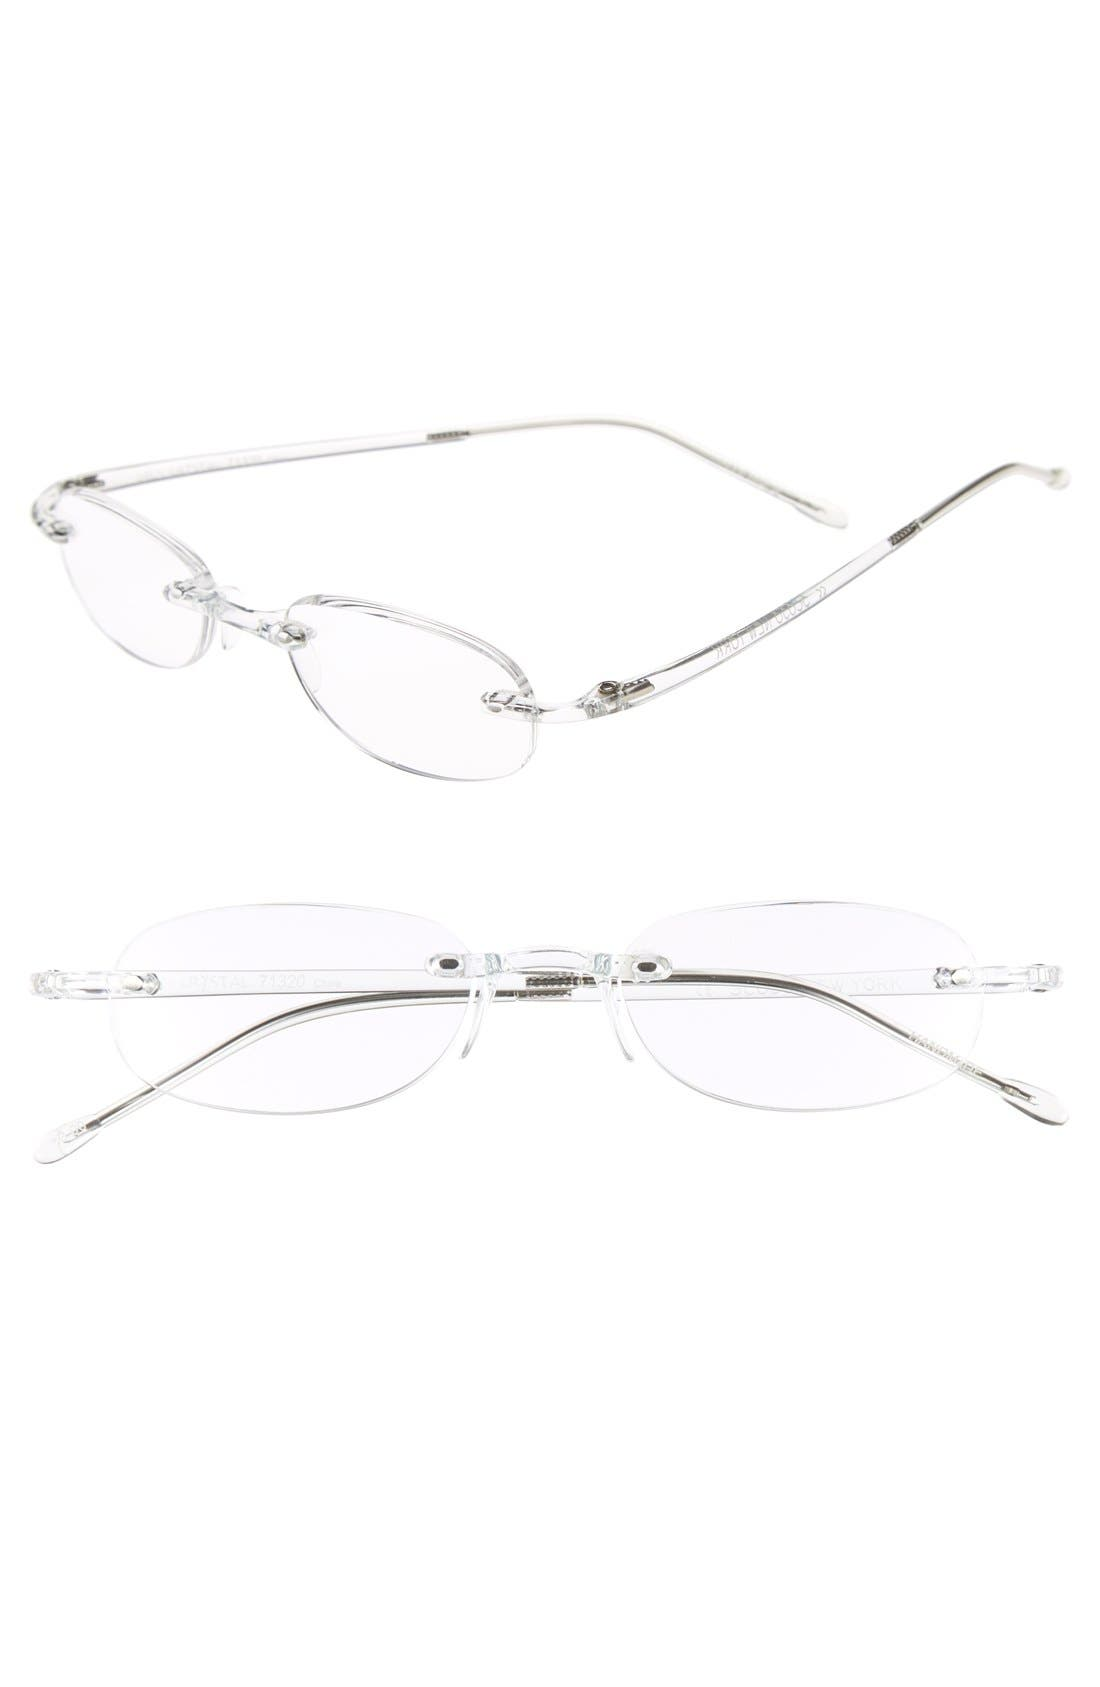 'Gels - Crystal' 48mm Reading Glasses,                             Main thumbnail 1, color,                             100